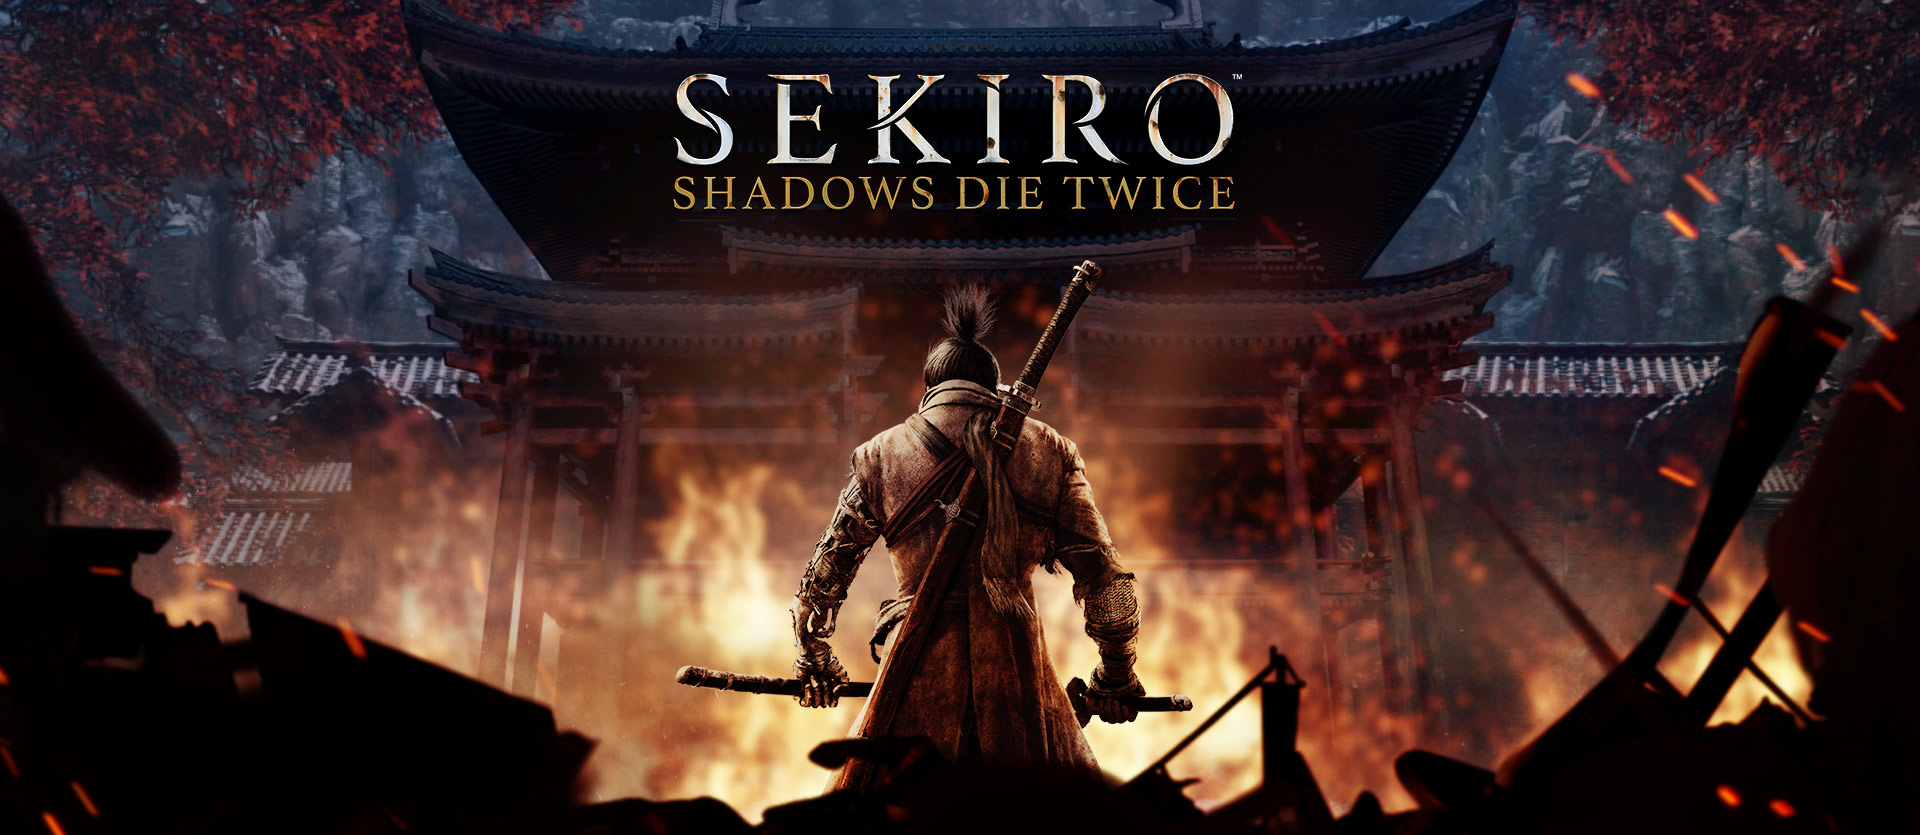 Sekiro Shadows Die Twice, A samurai kneels in front of a burning Japanese temple